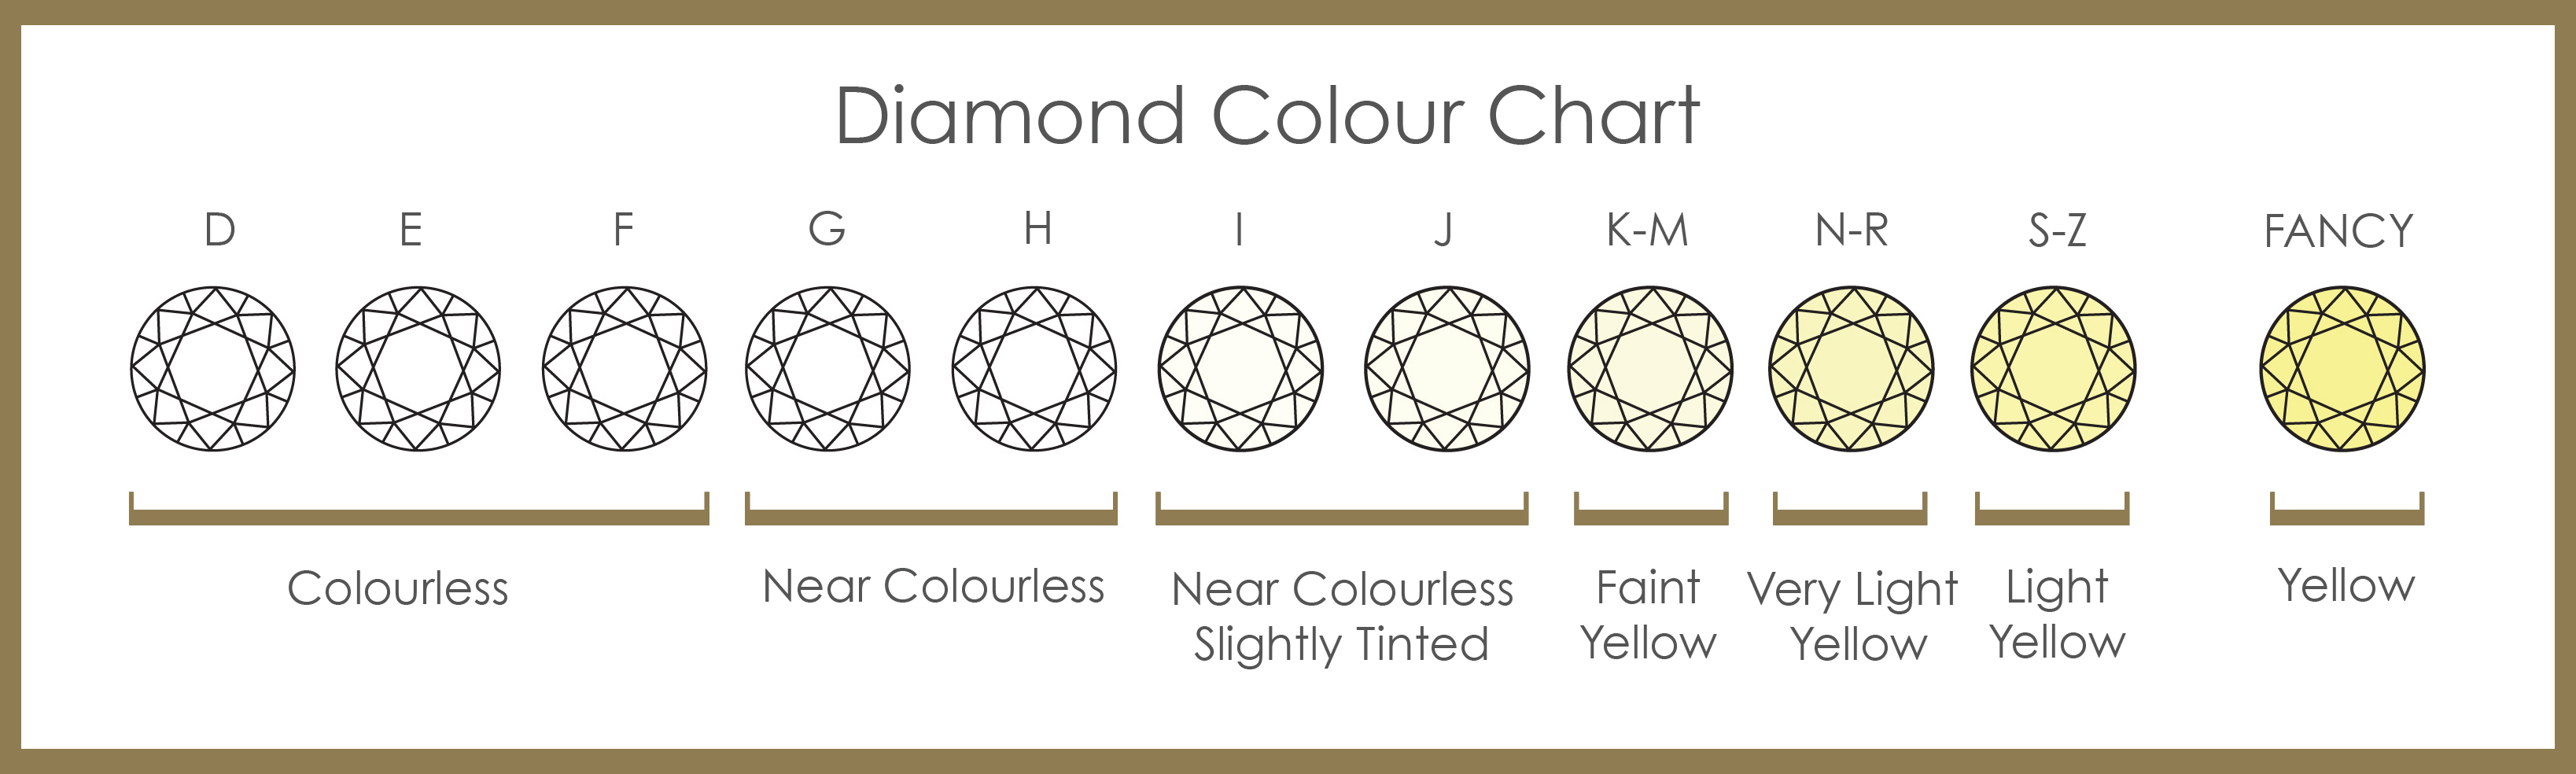 Diamond-Colour-Chart copy